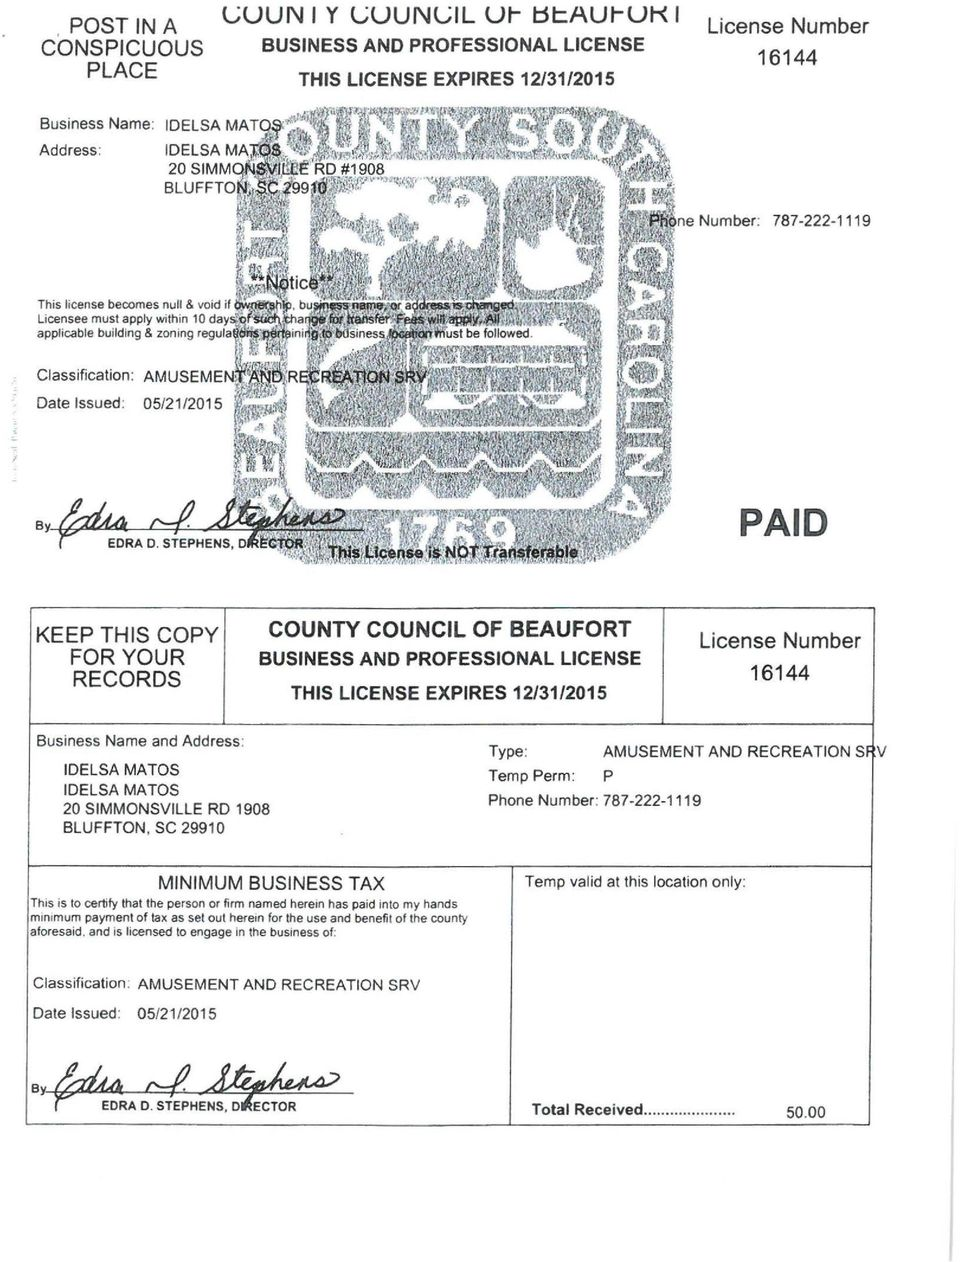 ~f~~'~a applicable building & zoning reg~llaq~ii4:j~iini Classification: AMUSEMENl~~l~l~~~fa Date Issued: 05/21/2015 PAID KEEP THIS COPY FOR YOUR RECORDS COUNTY COUNCIL OF BEAUFORT BUSINESS AND